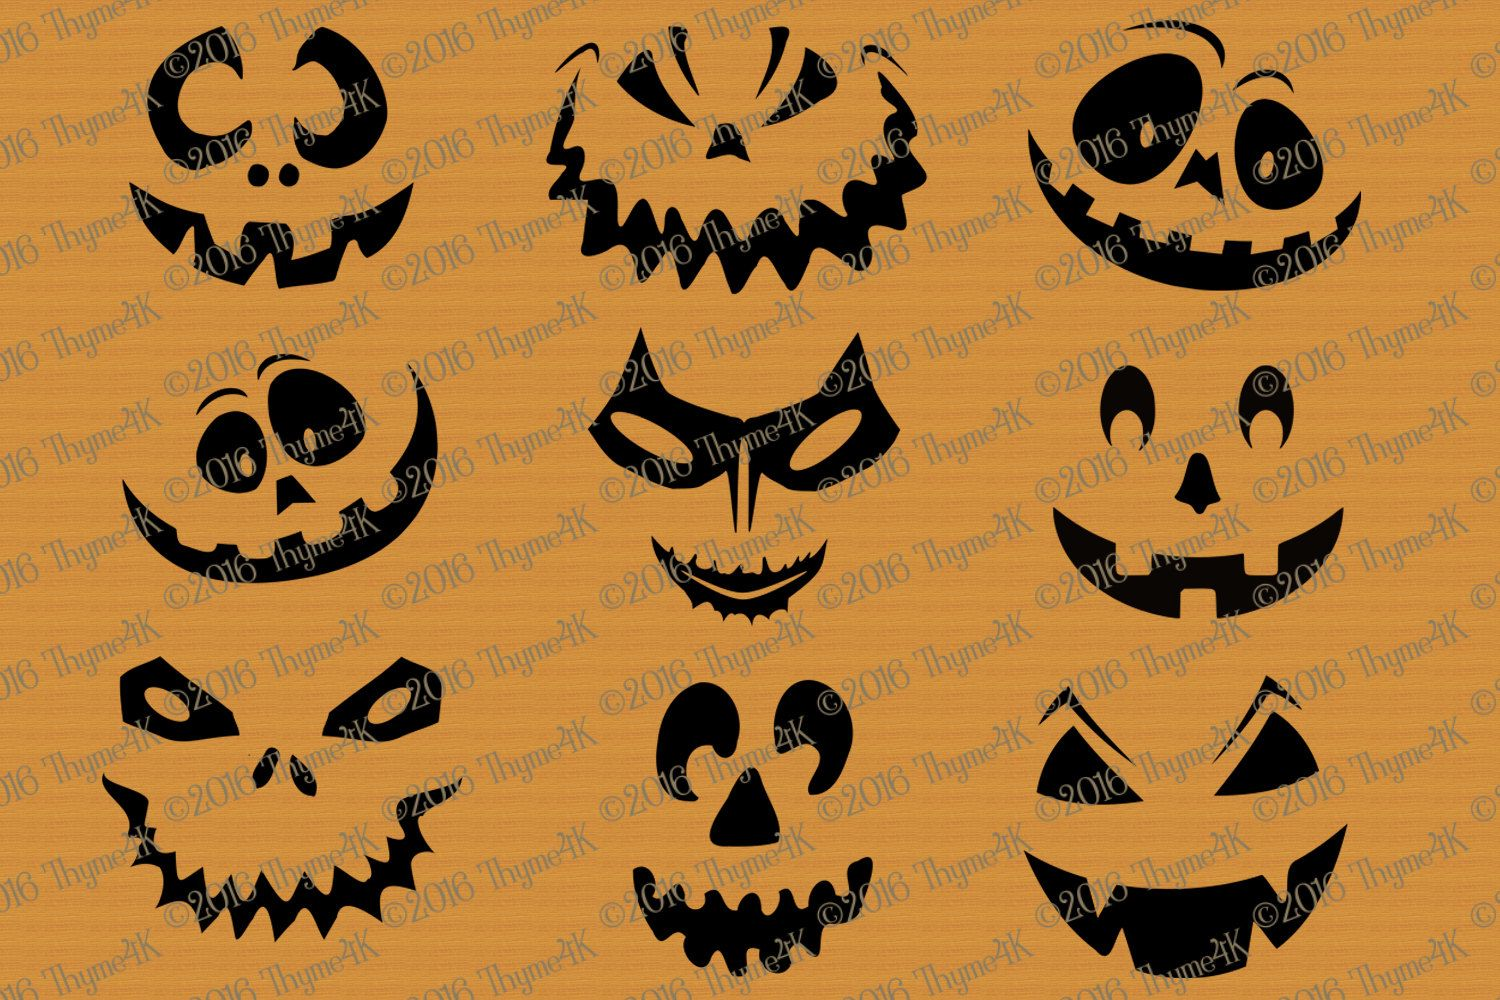 Svg Halloween Pumpkin Faces Mix And Match Includes Svg Dxf Amp Eps Formats Use As Faces